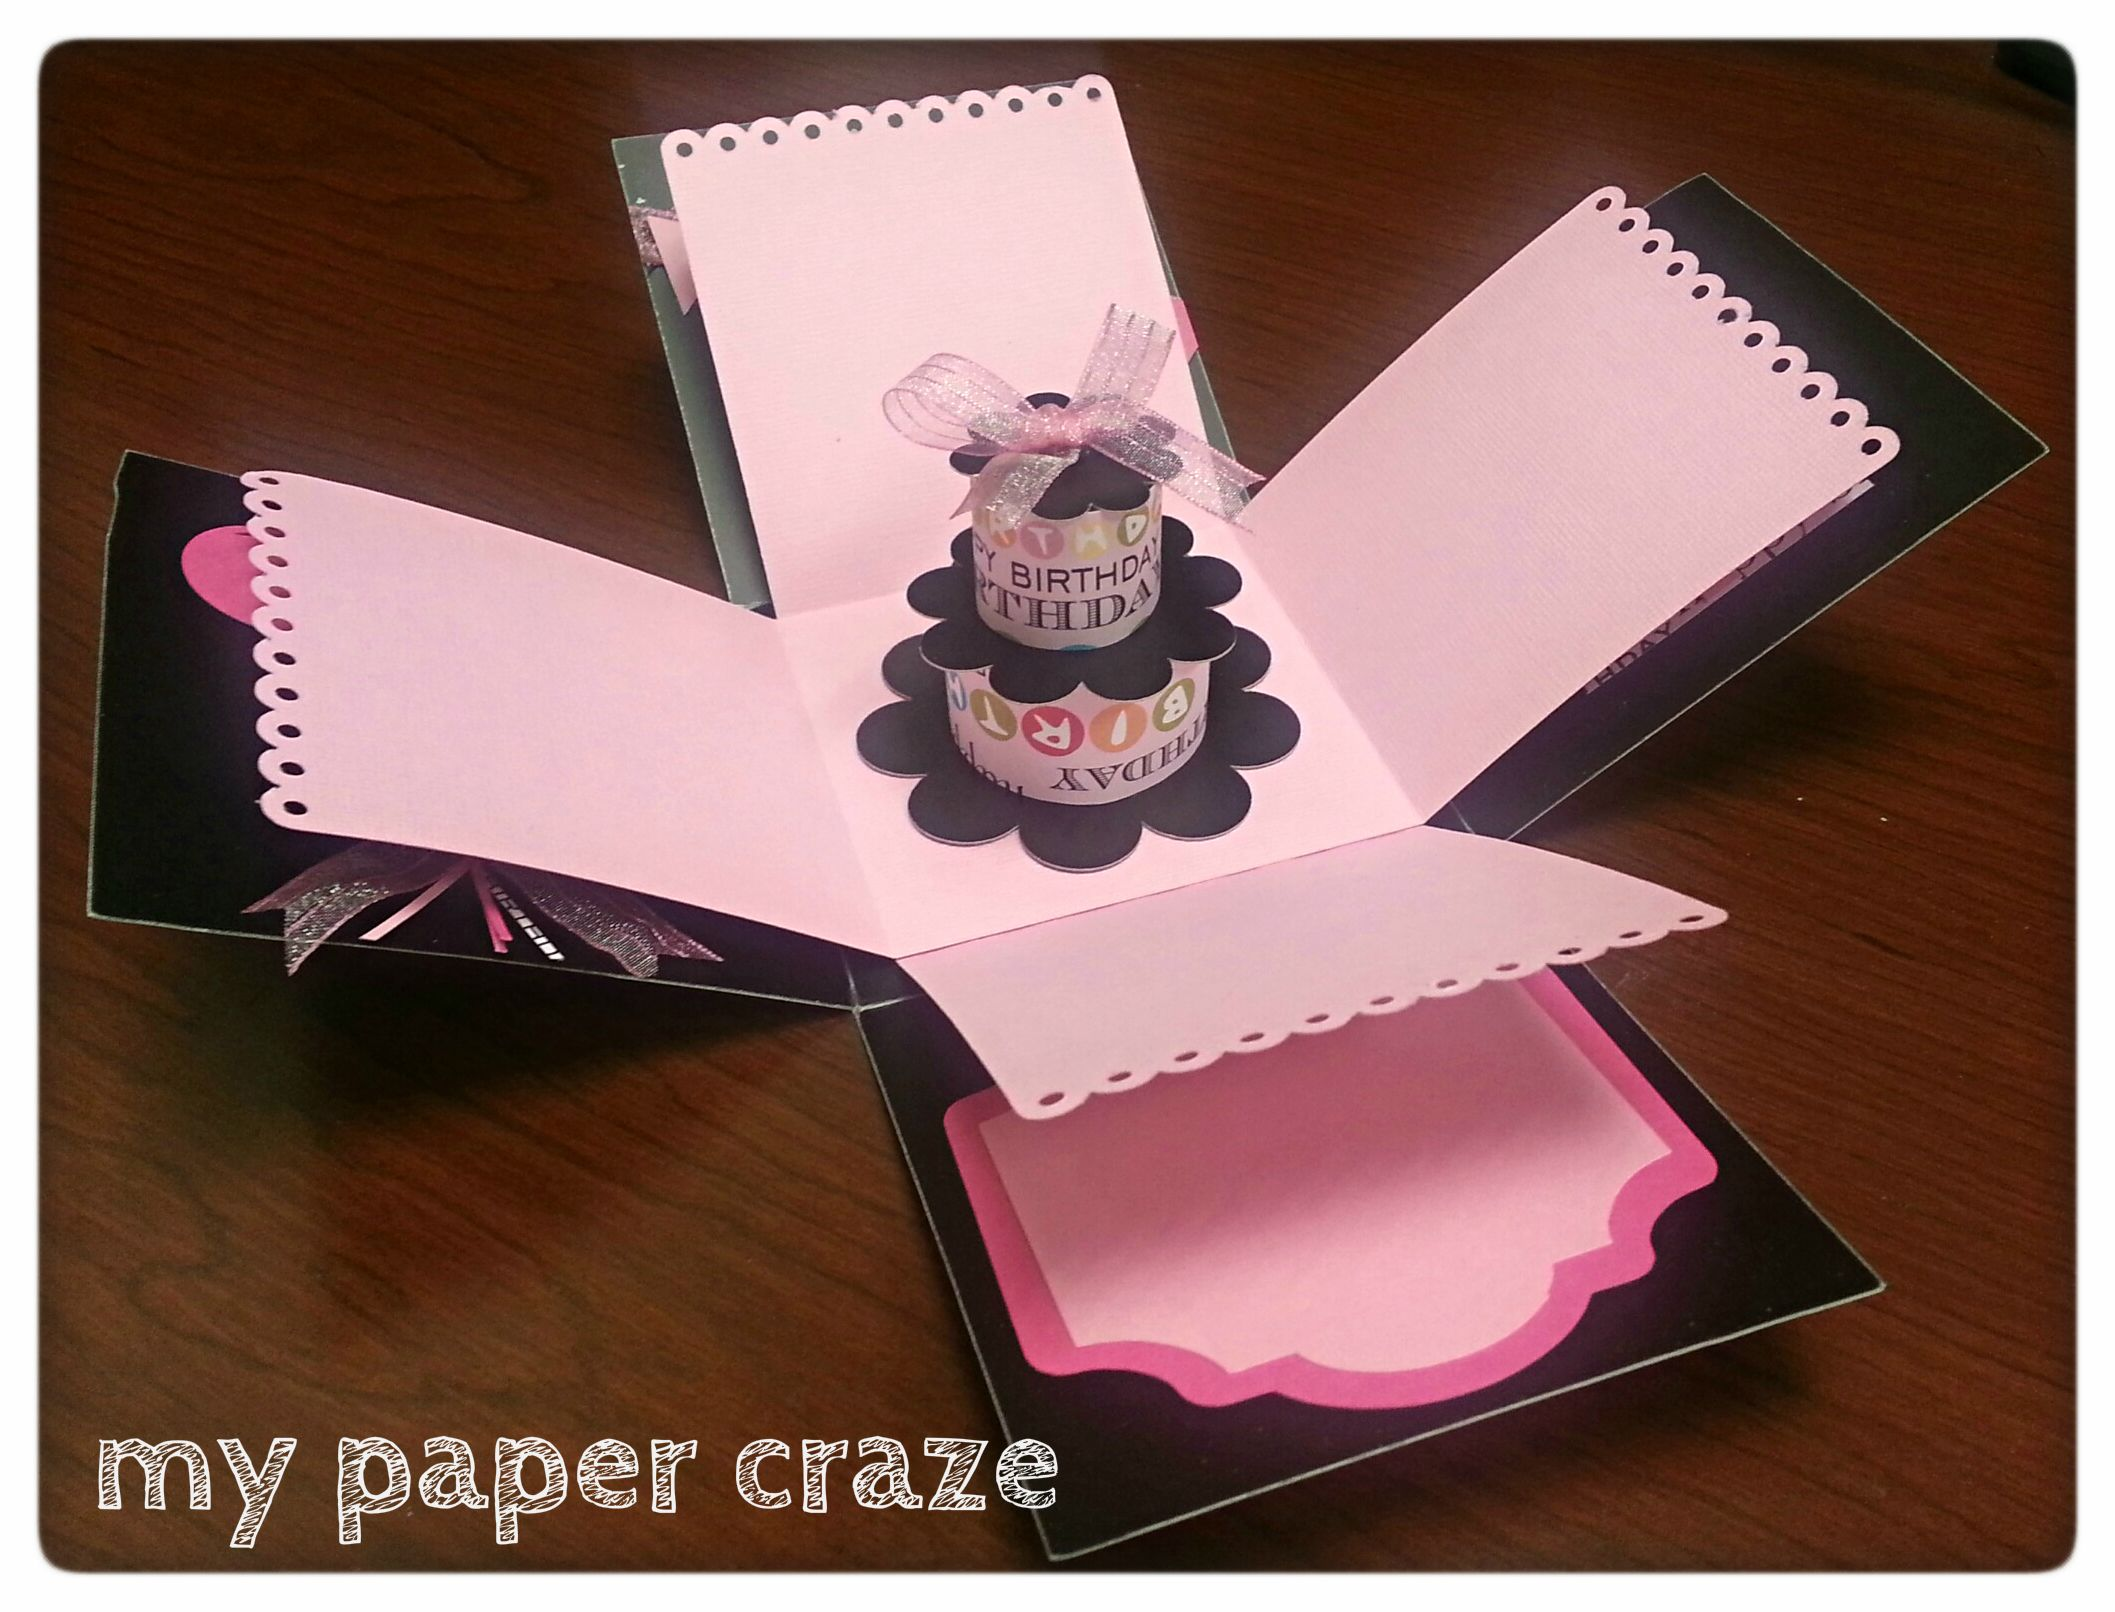 Handmade birthday card ideas for best friend check this awesome handmade birthday card ideas for best friend check this awesome product by going bookmarktalkfo Choice Image